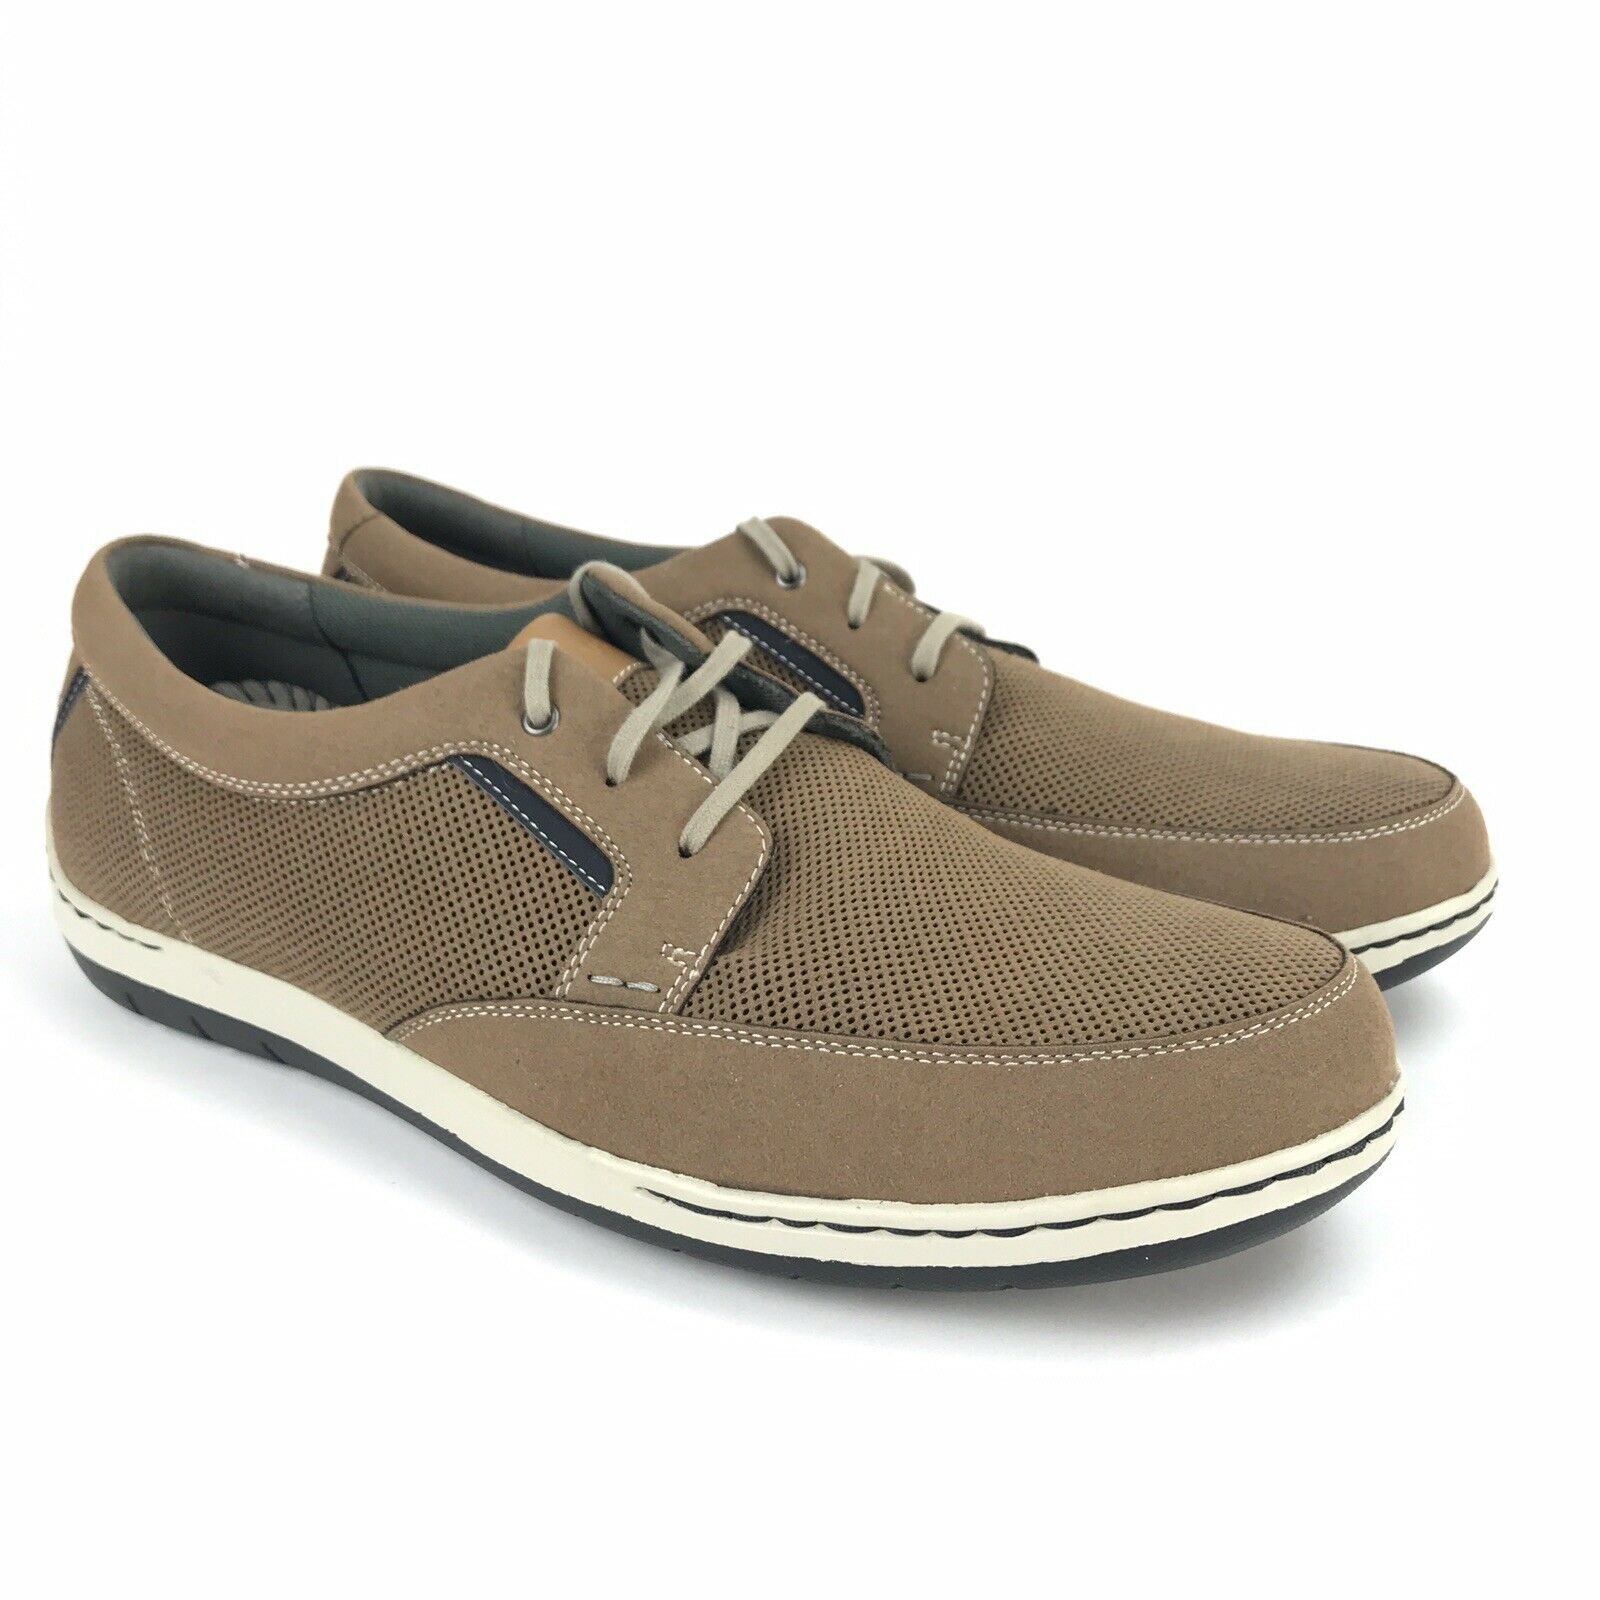 9f731fd7954 Dunham Men s Fitswift Tan Lace Up Casual Casual Casual Sneakers Size 8.5 D  a54731